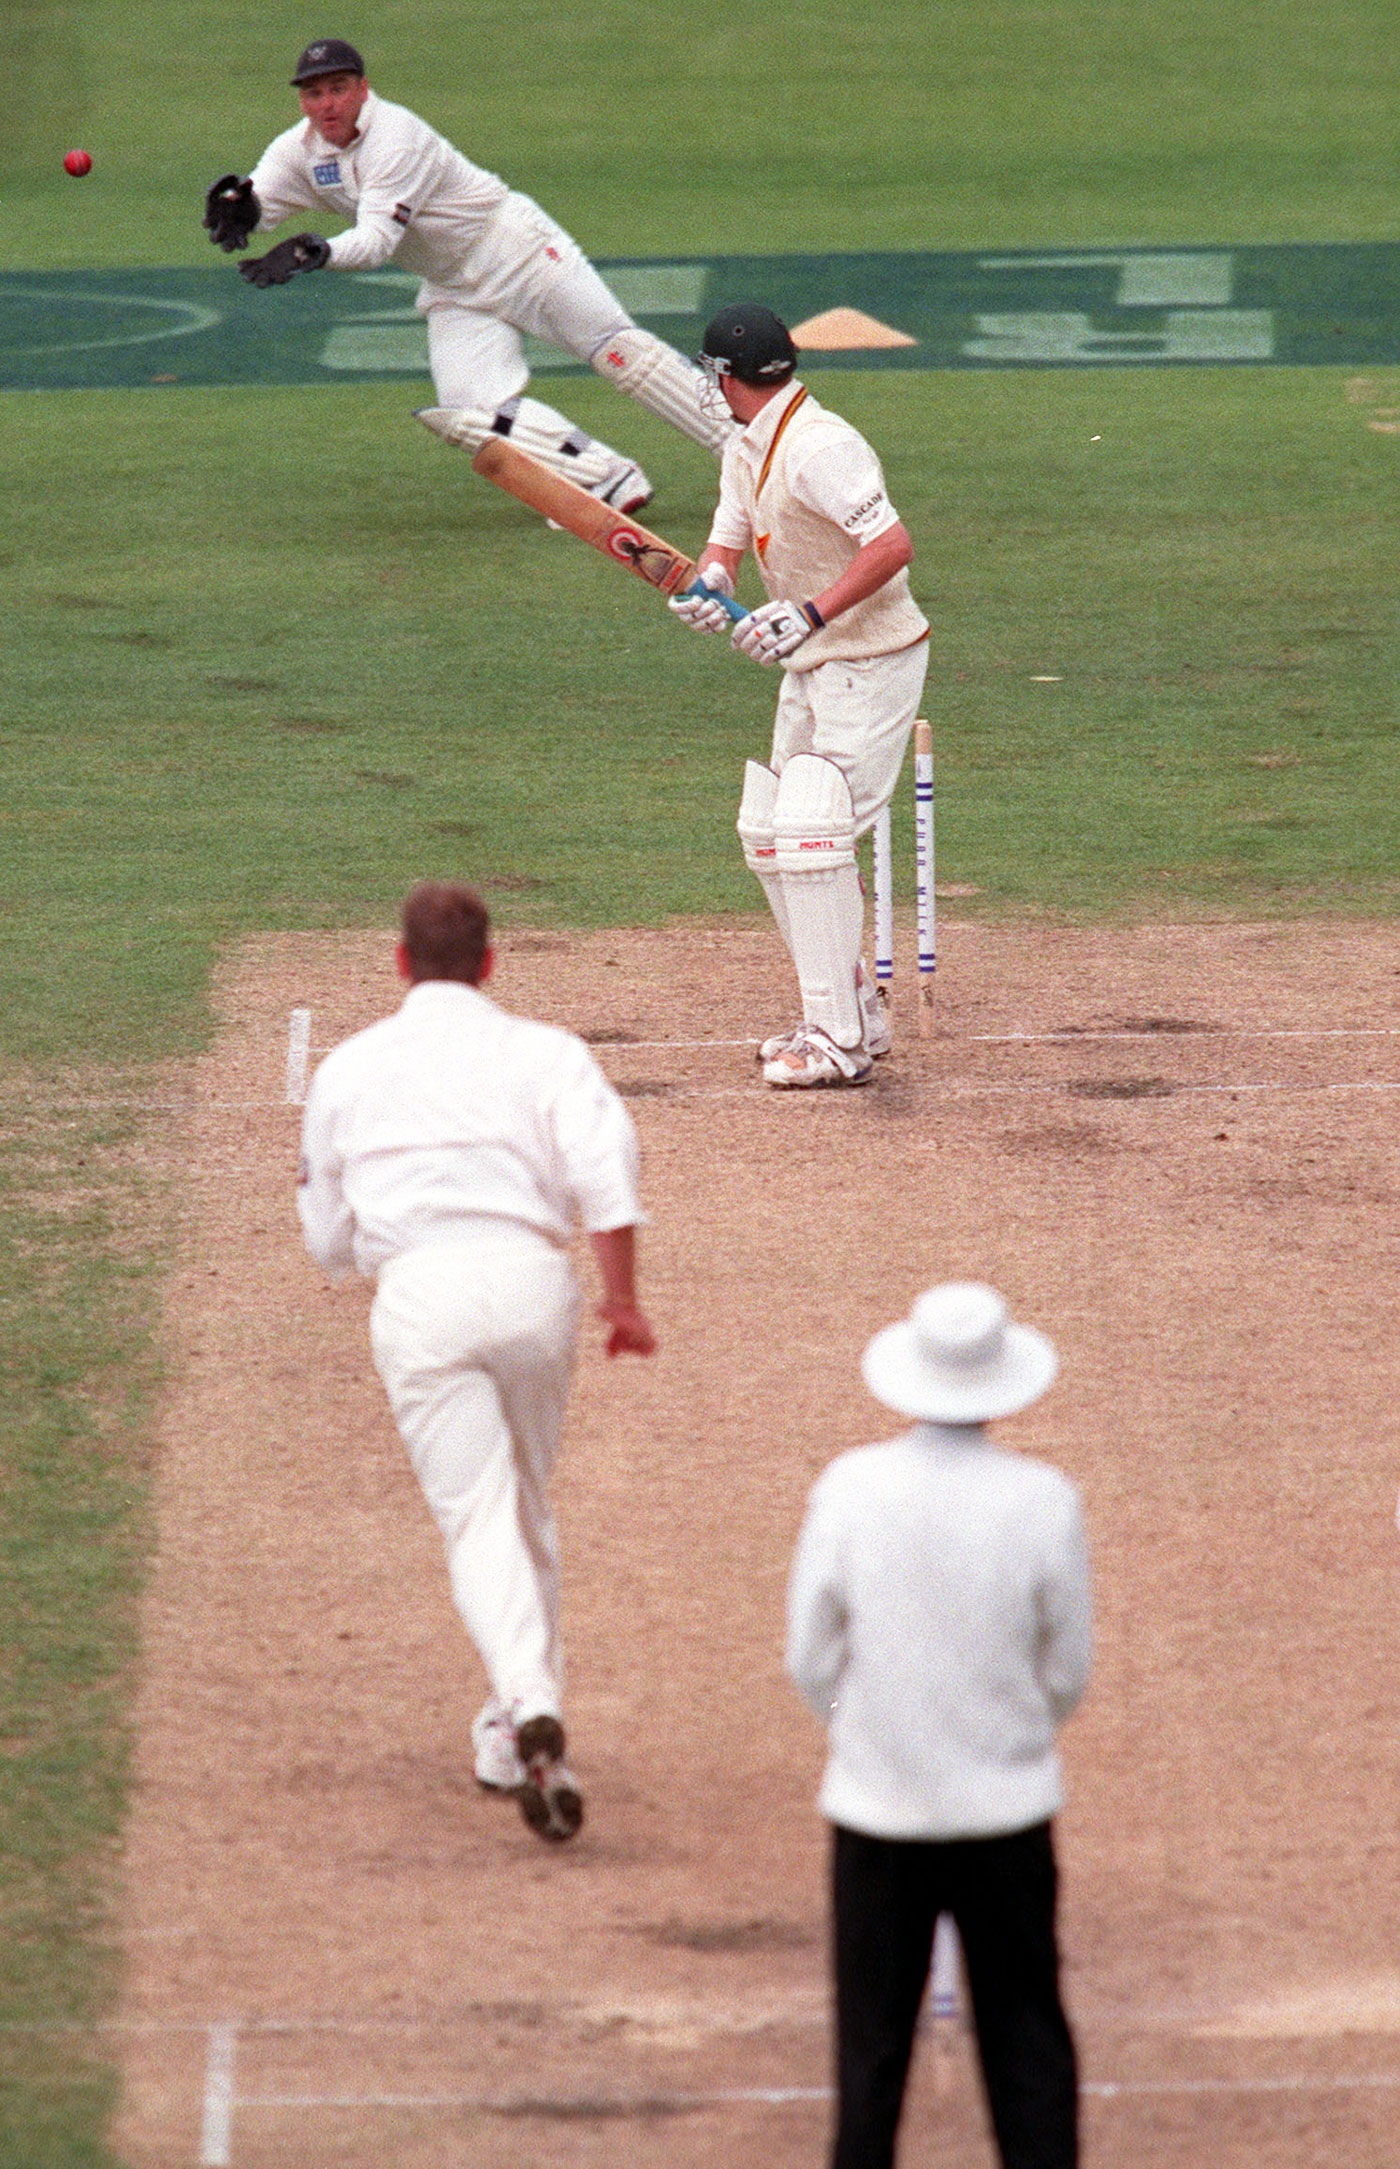 Till recently, Darren Berry held the dismissals record in the Sheffield Shield, but as he saw throughout his career and then as a coach, it's the runs column that everyone looks at